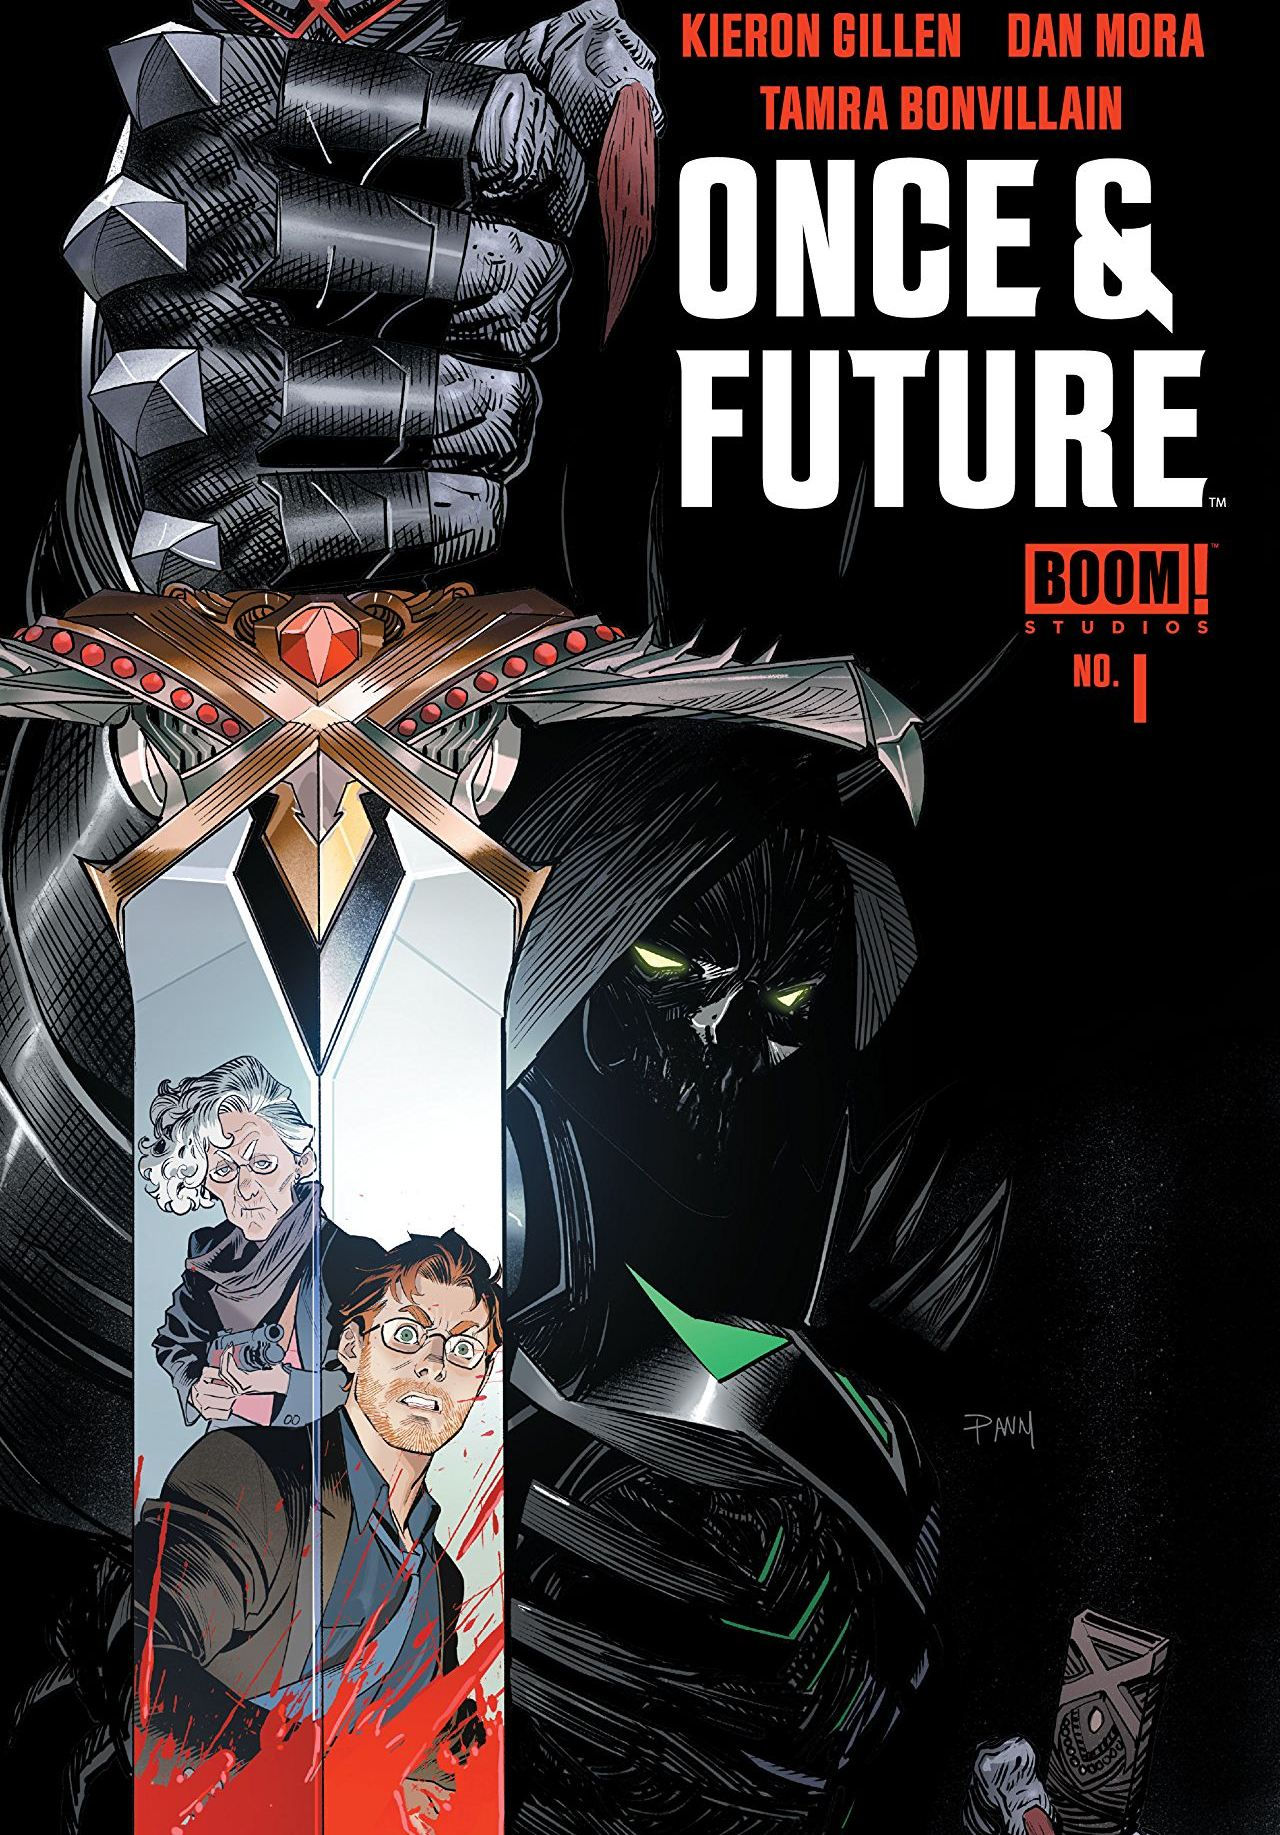 Once and Future #1 review: the myths of a nation